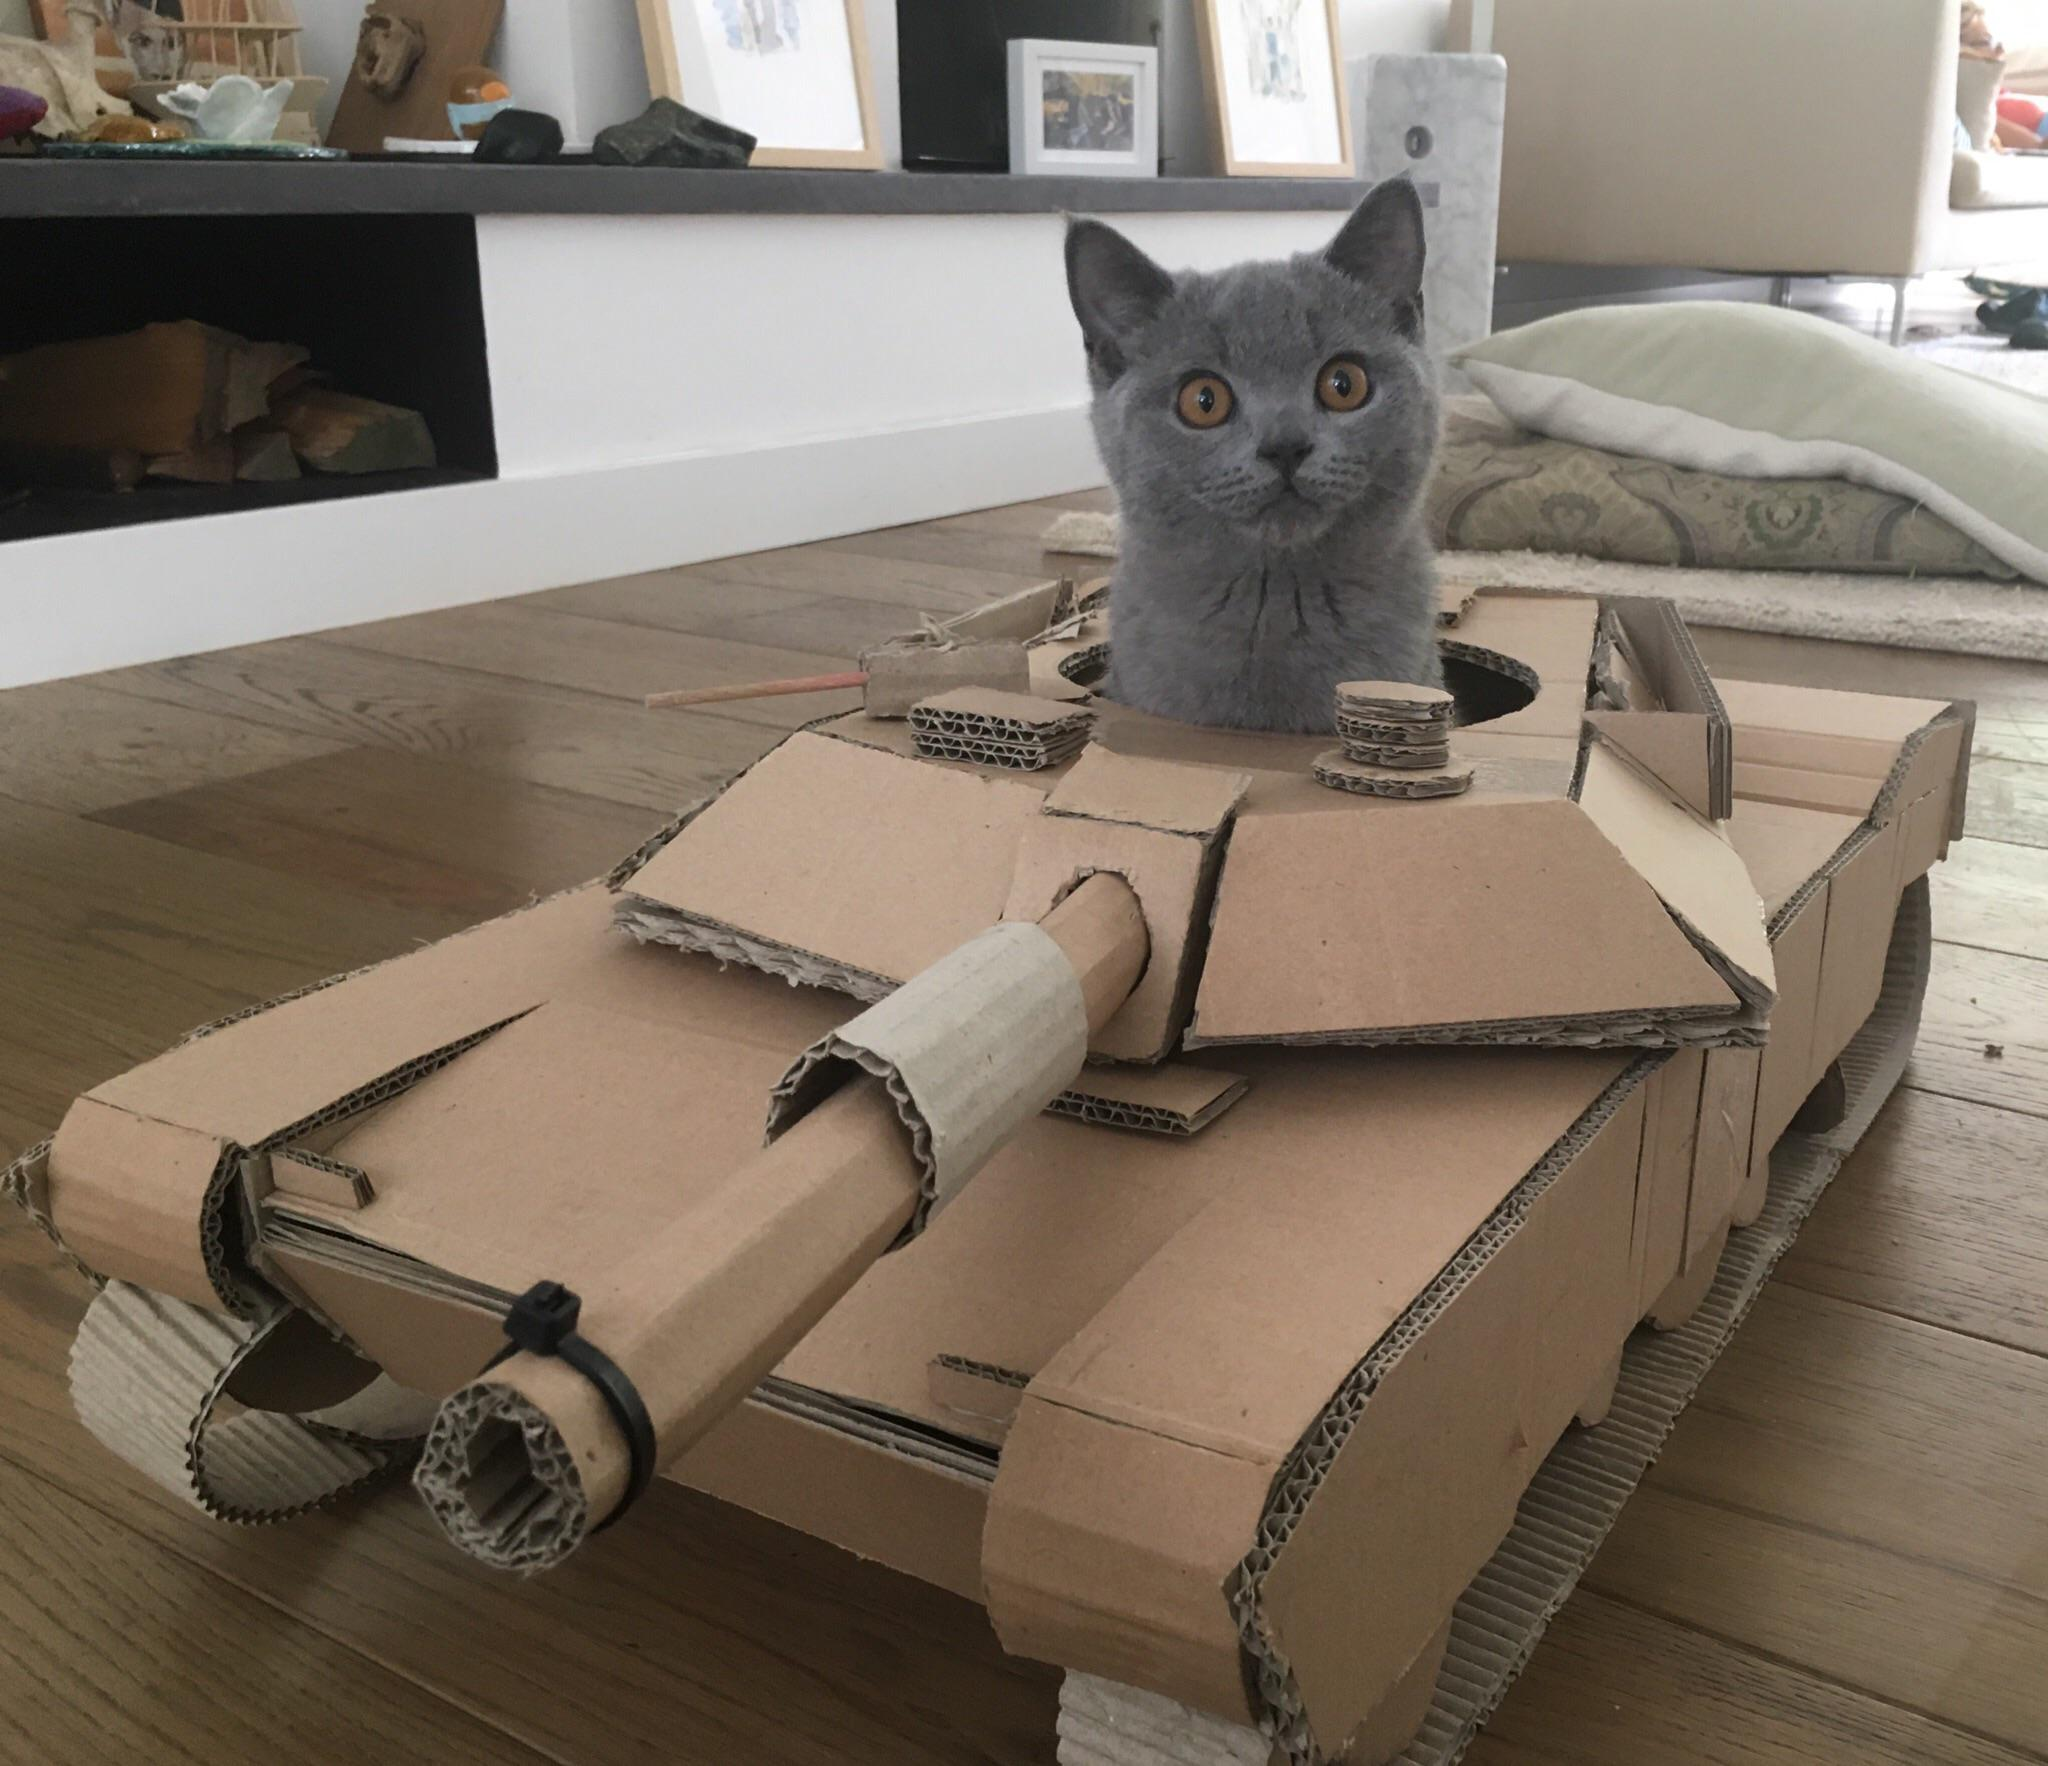 cat in cardboard M1 Abrams tank